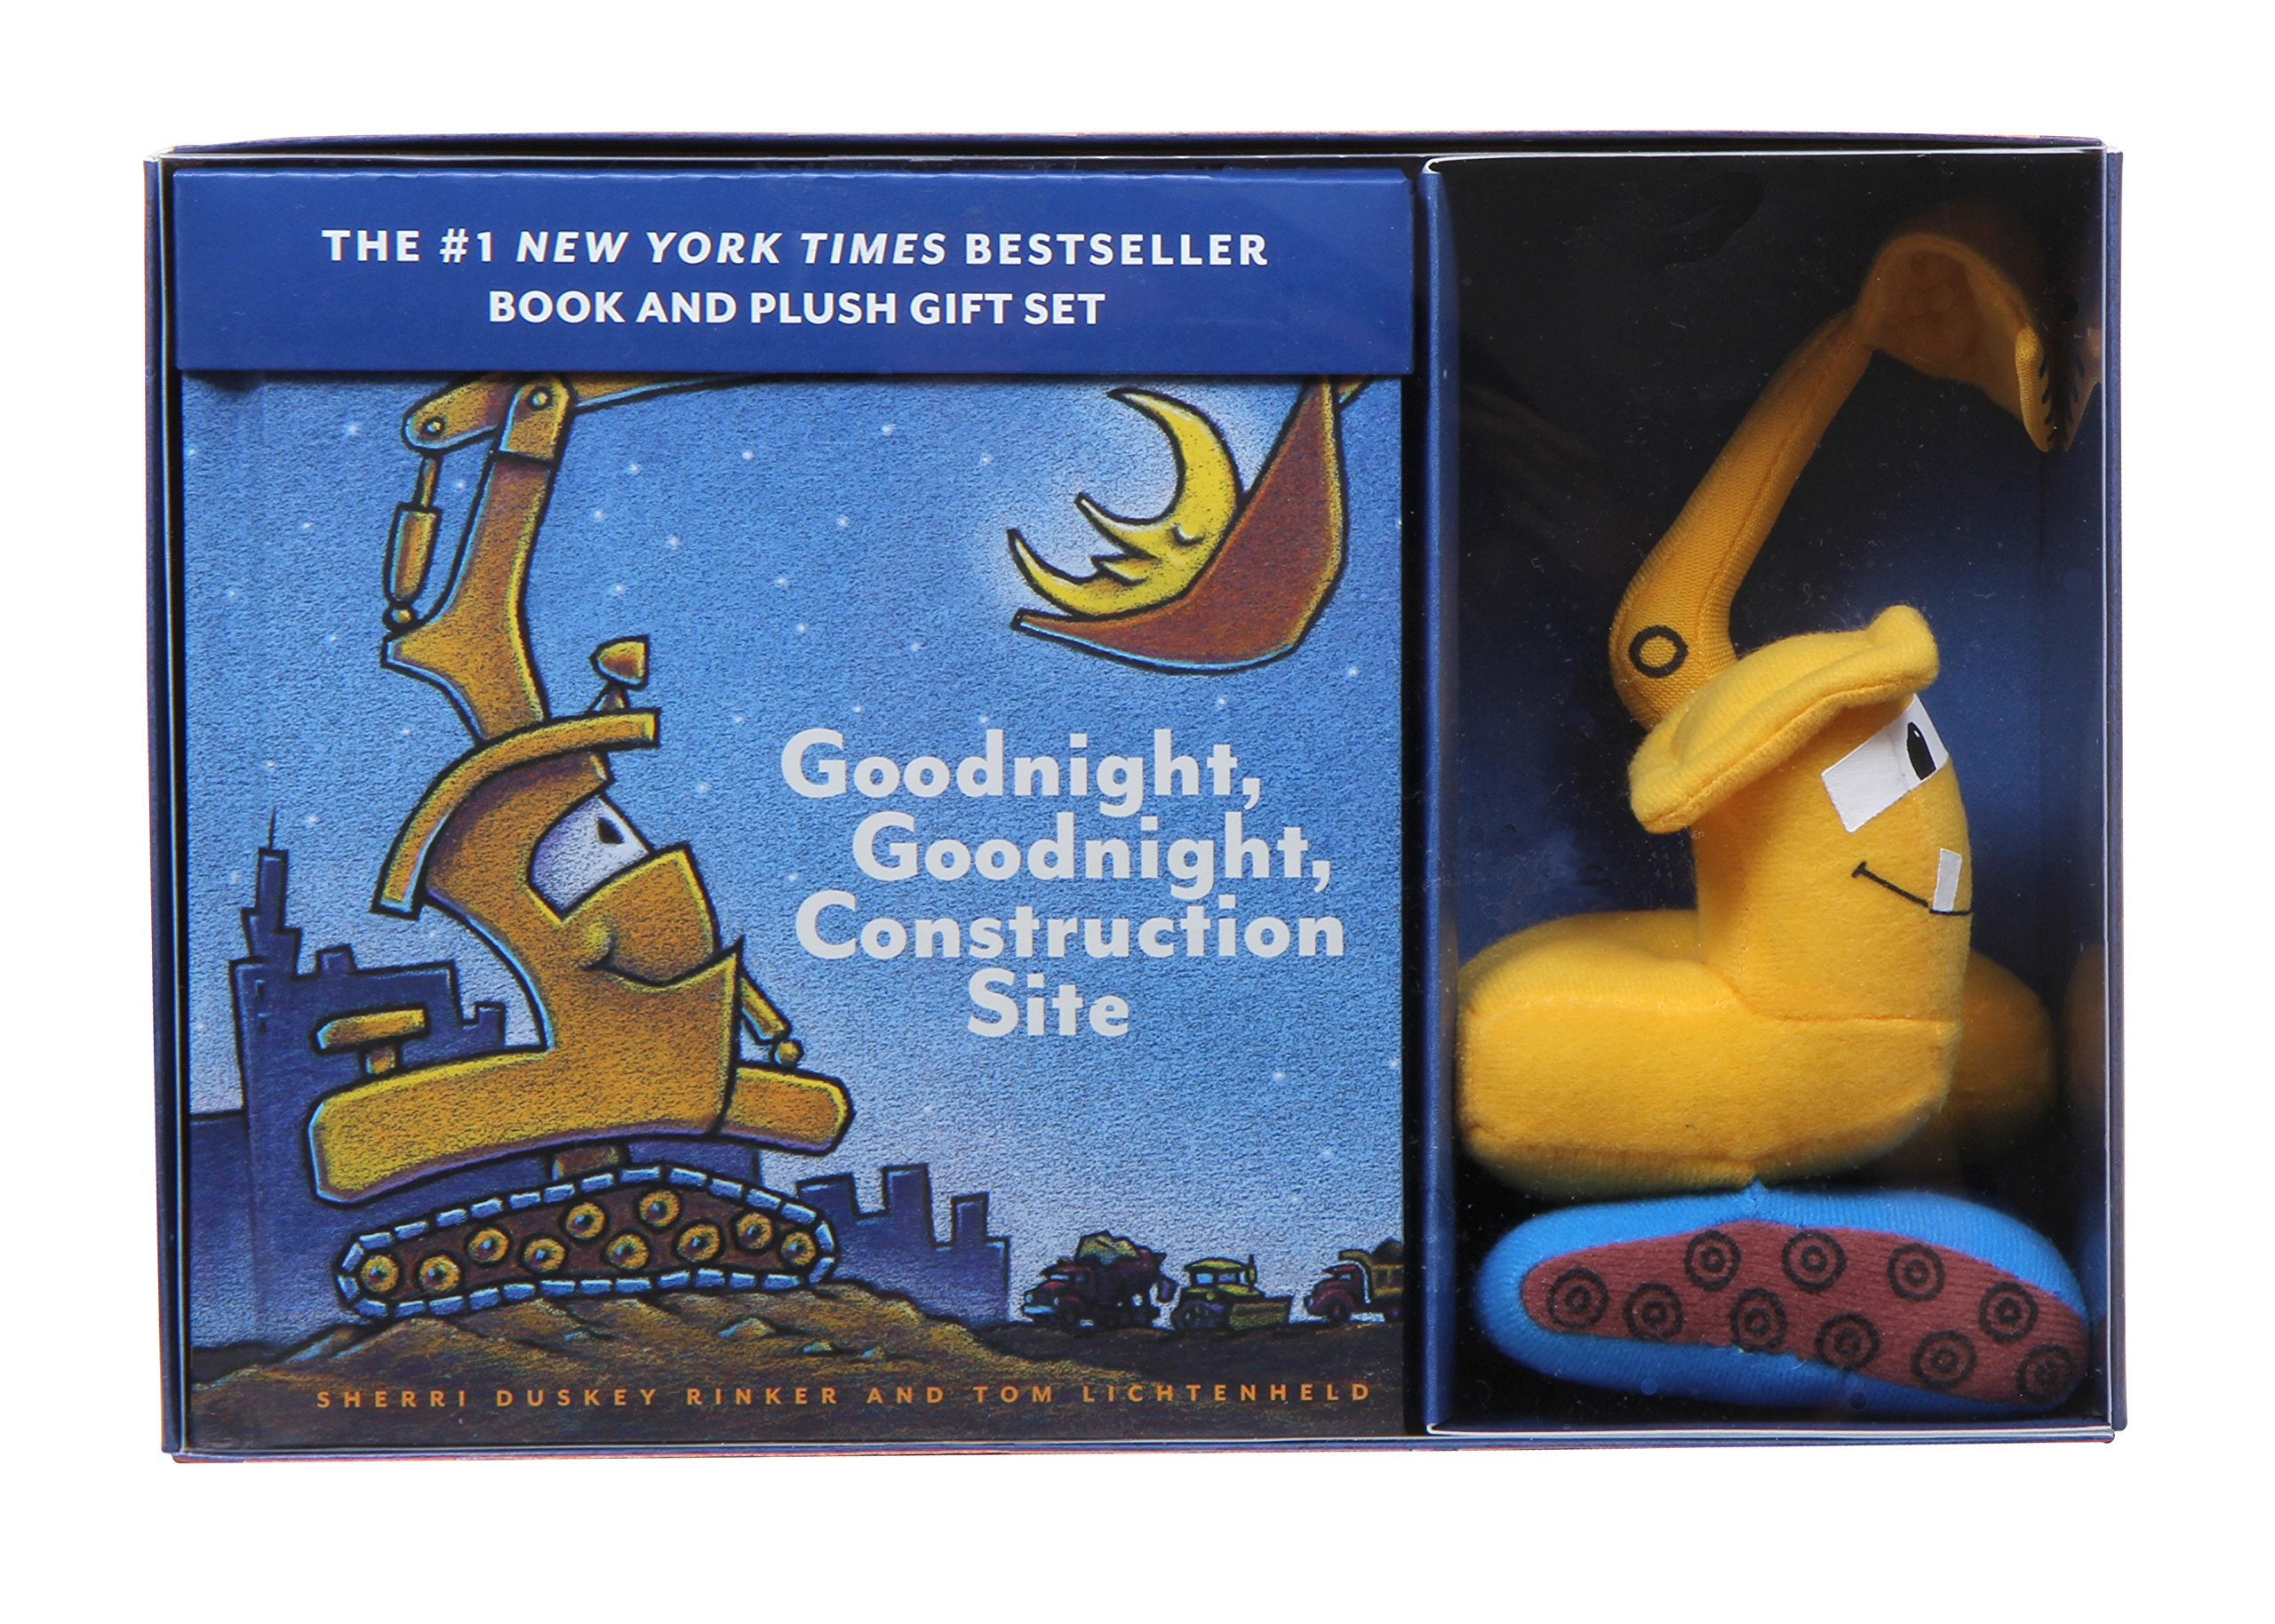 Goodnight, Goodnight, Construction Site Book and Plush Gift Set